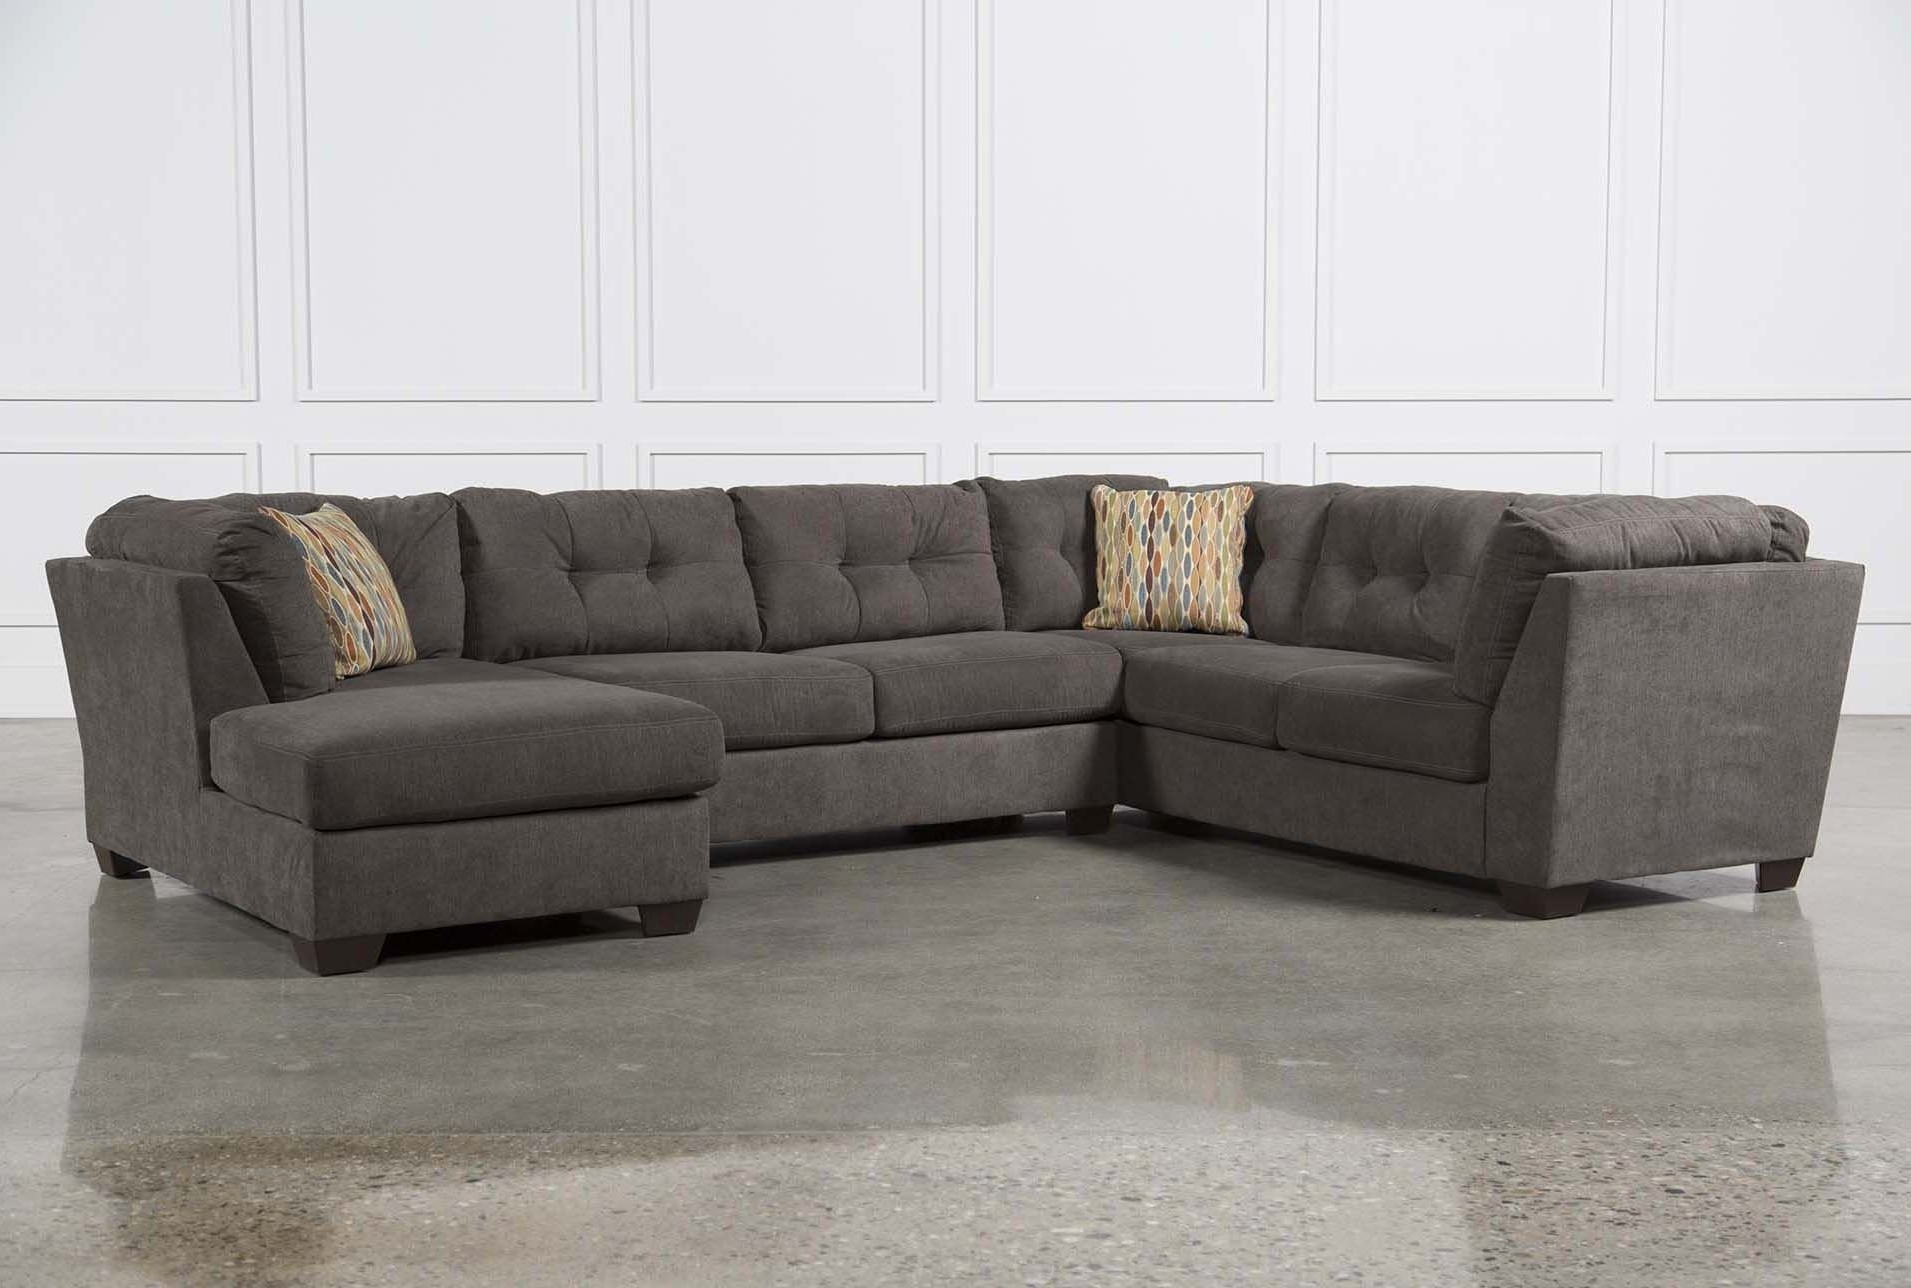 High Quality Sectional Sofas Intended For Popular 3 Seat Sectional Sofa – Home Design Ideas And Pictures (View 5 of 20)